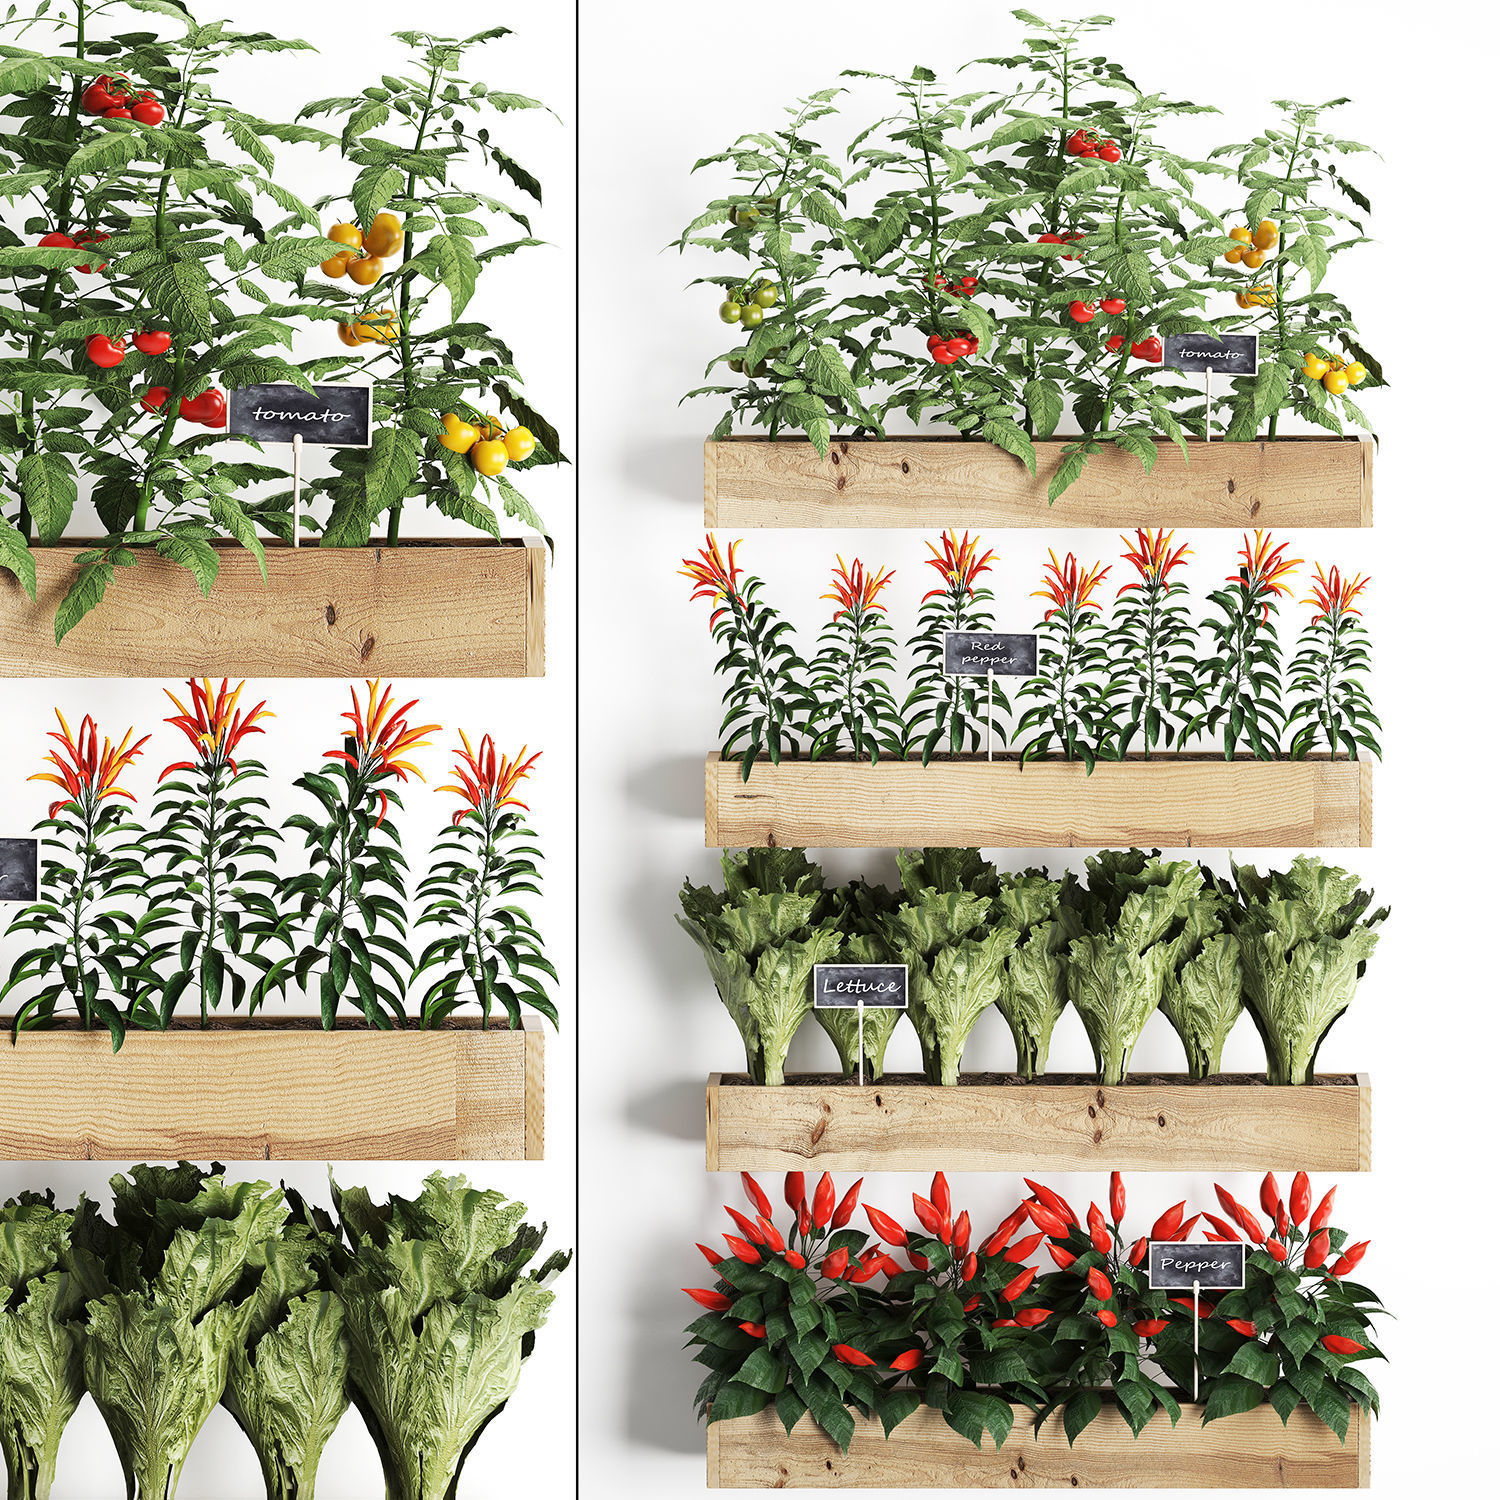 3d Decorative Plants For The Kitchen On Wooden Box